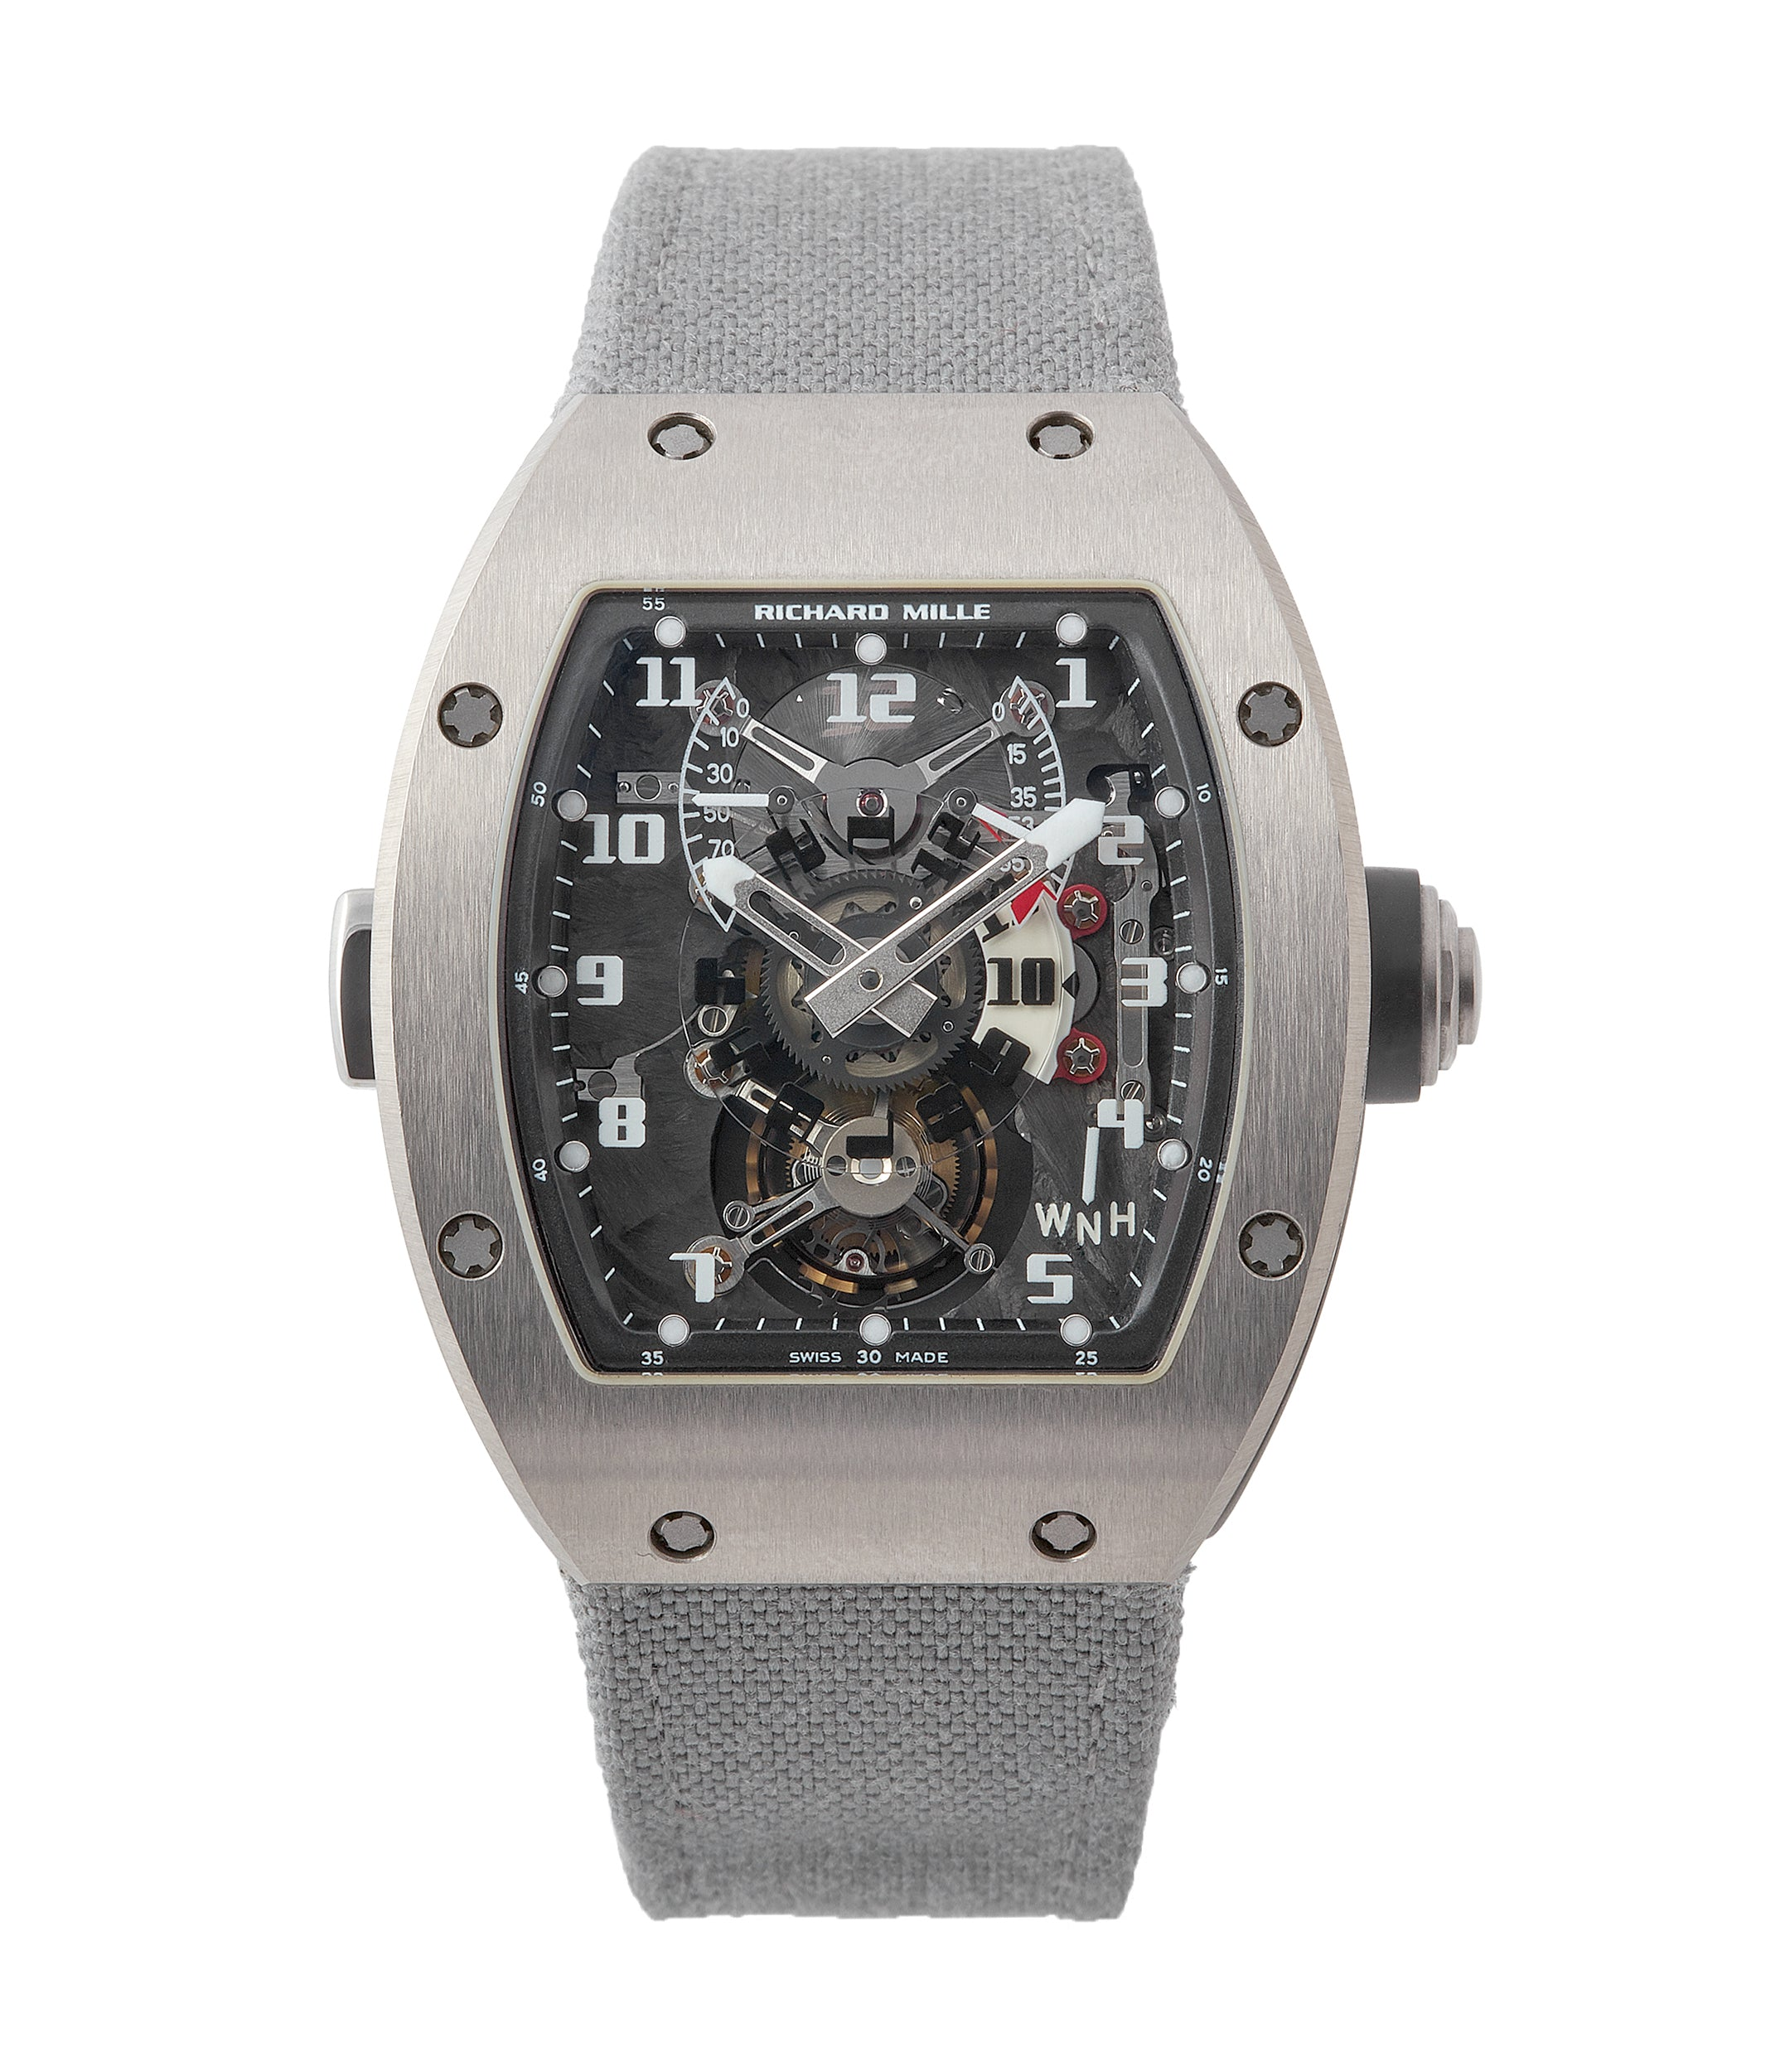 buy Richard Mille RM003-V2 titanium tourbillon dual-time pre-owned rare independent watchmaker sports traveller watch for sale online at A Collected Man London UK specialist of rare watches